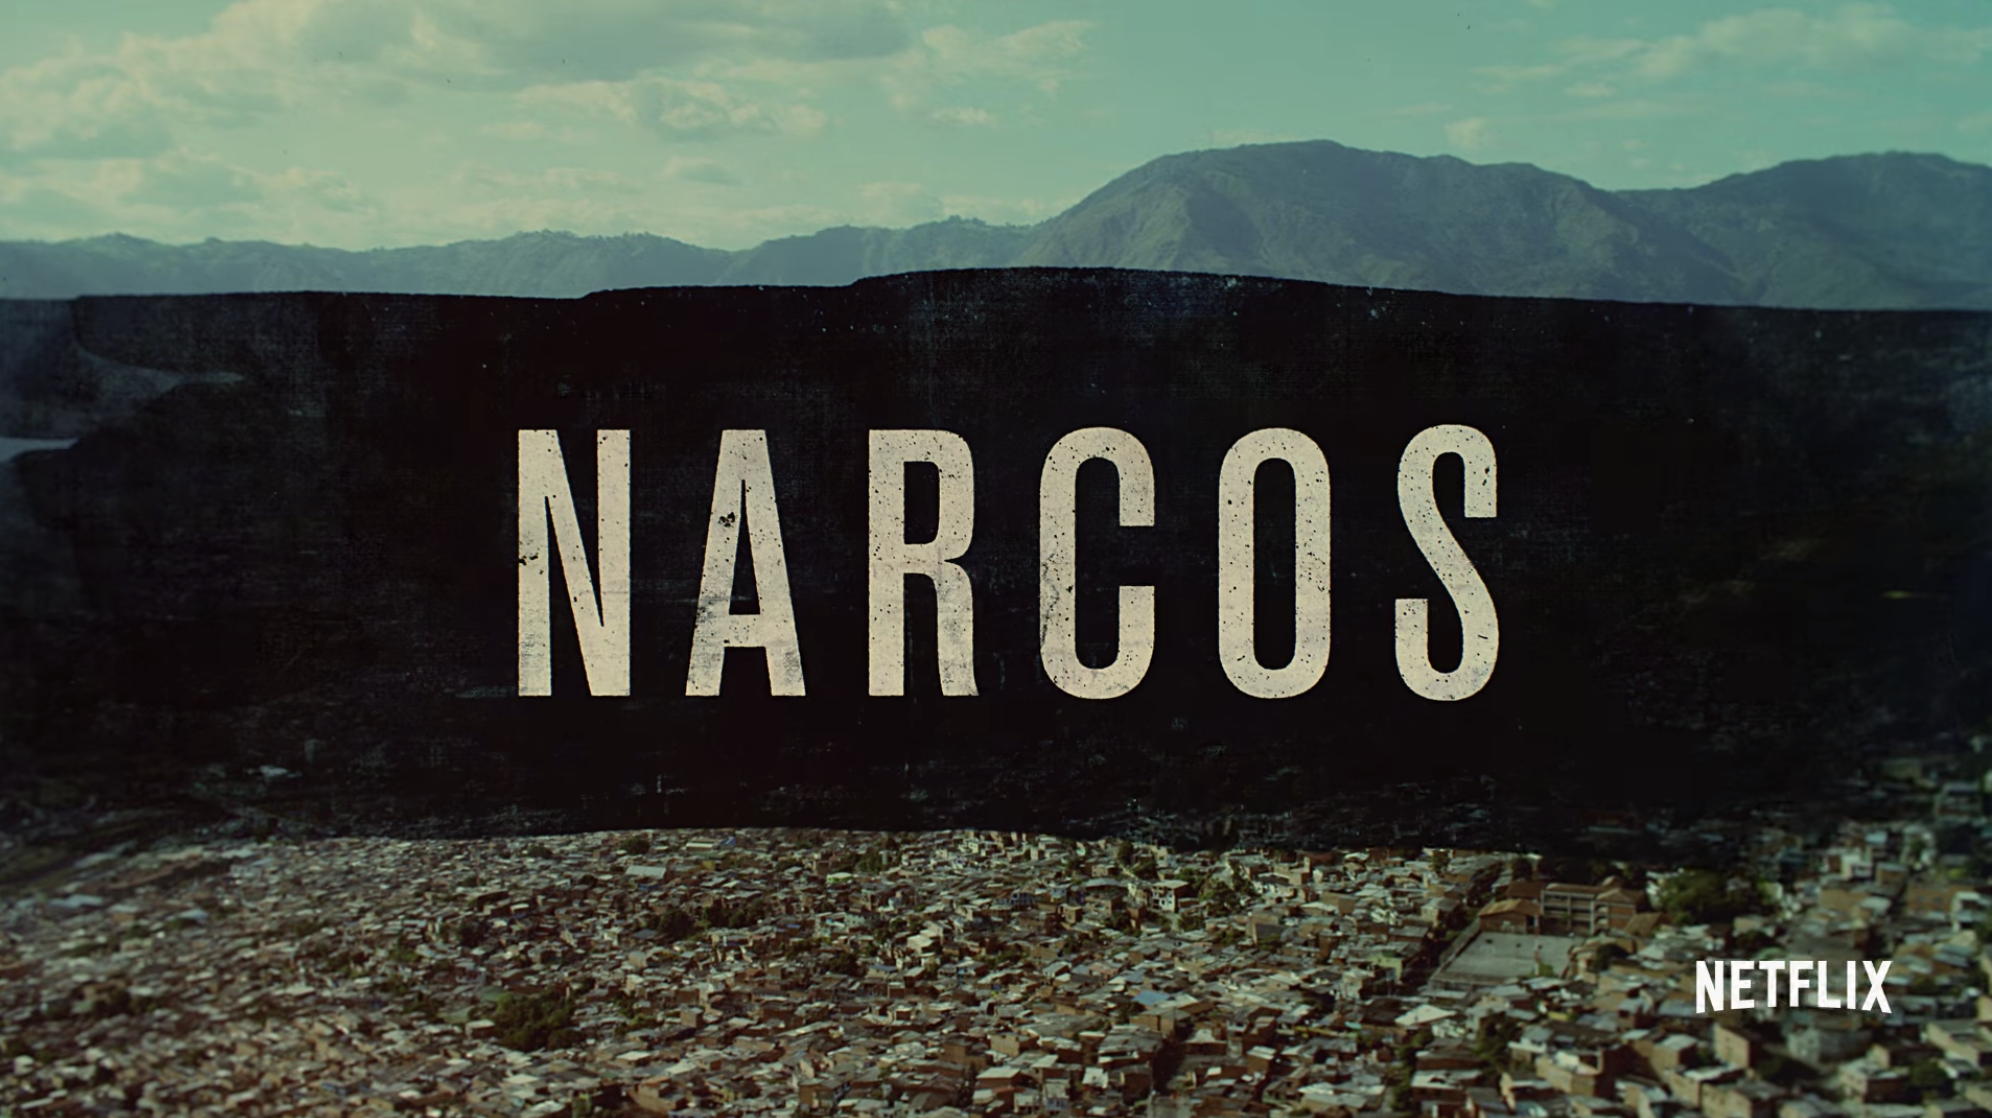 """Narcos"" title card — which is the title over a landscape of Colombia."